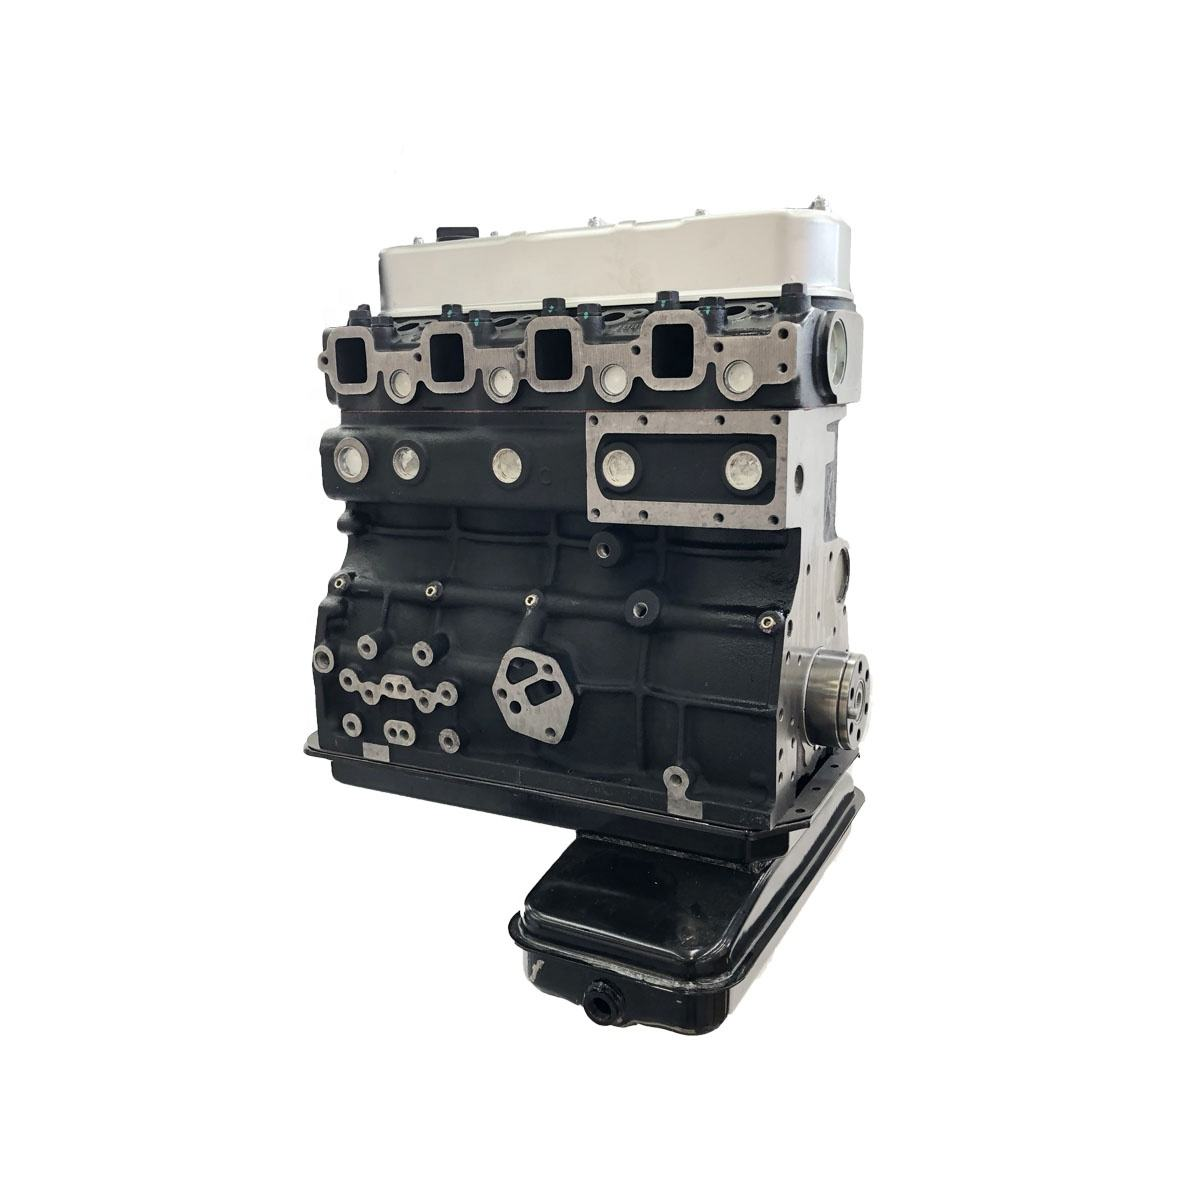 China supplier diesel Engine buy Long Block for Wuxi Faw 490 WB46-ZY11